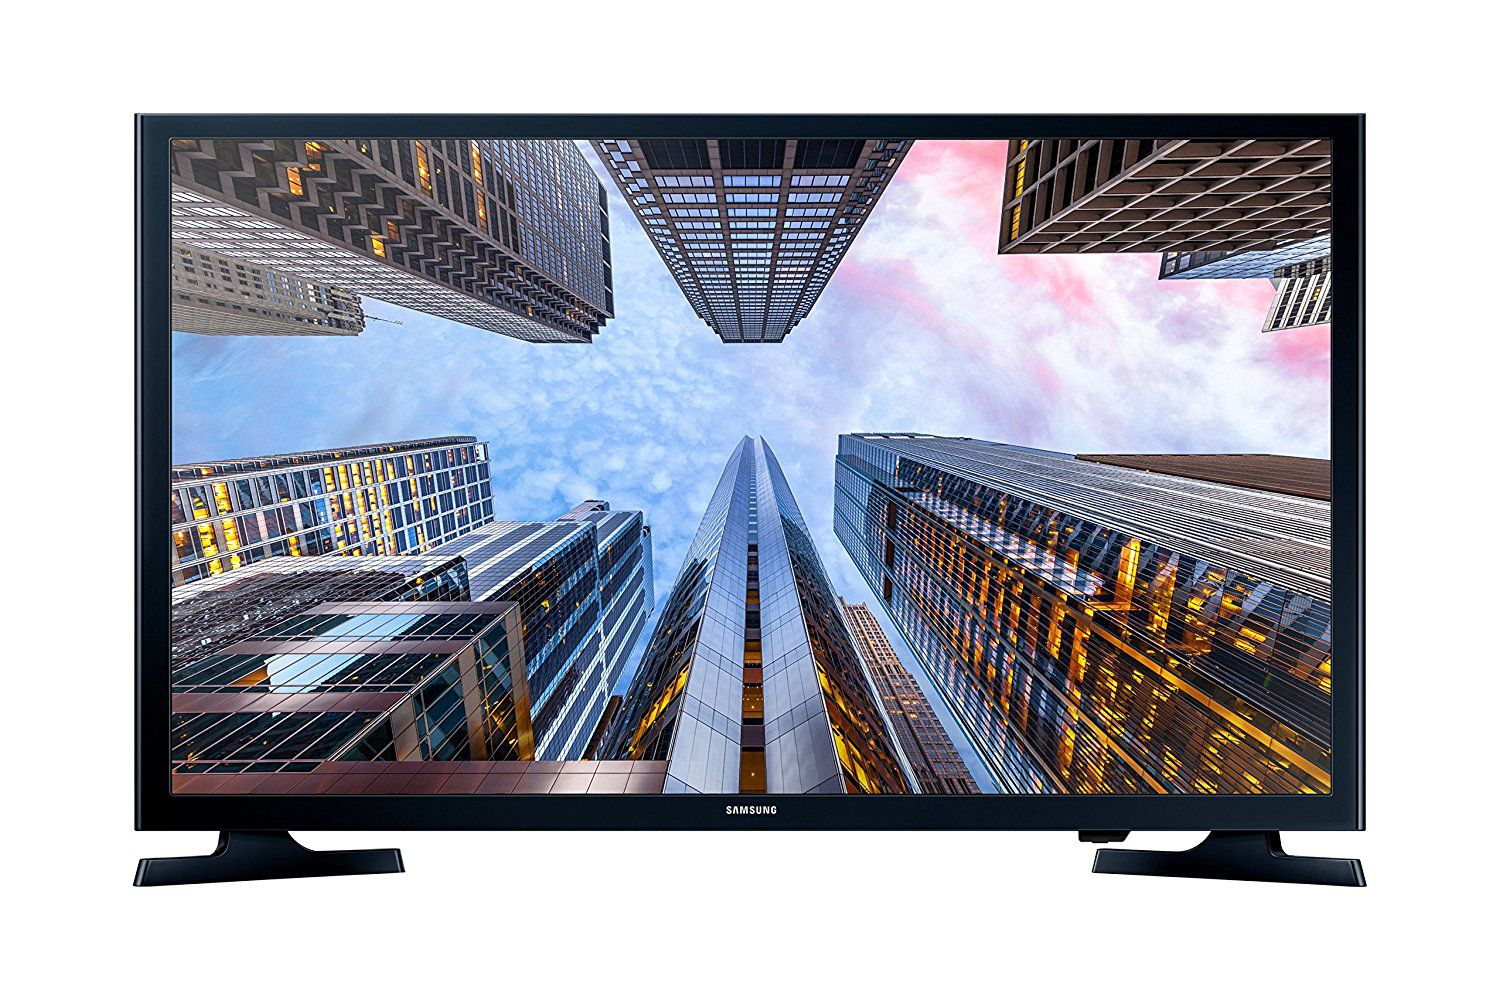 Samsung Series 4 80 cm ( 31.49 ) HD Ready (HDR) LED Television